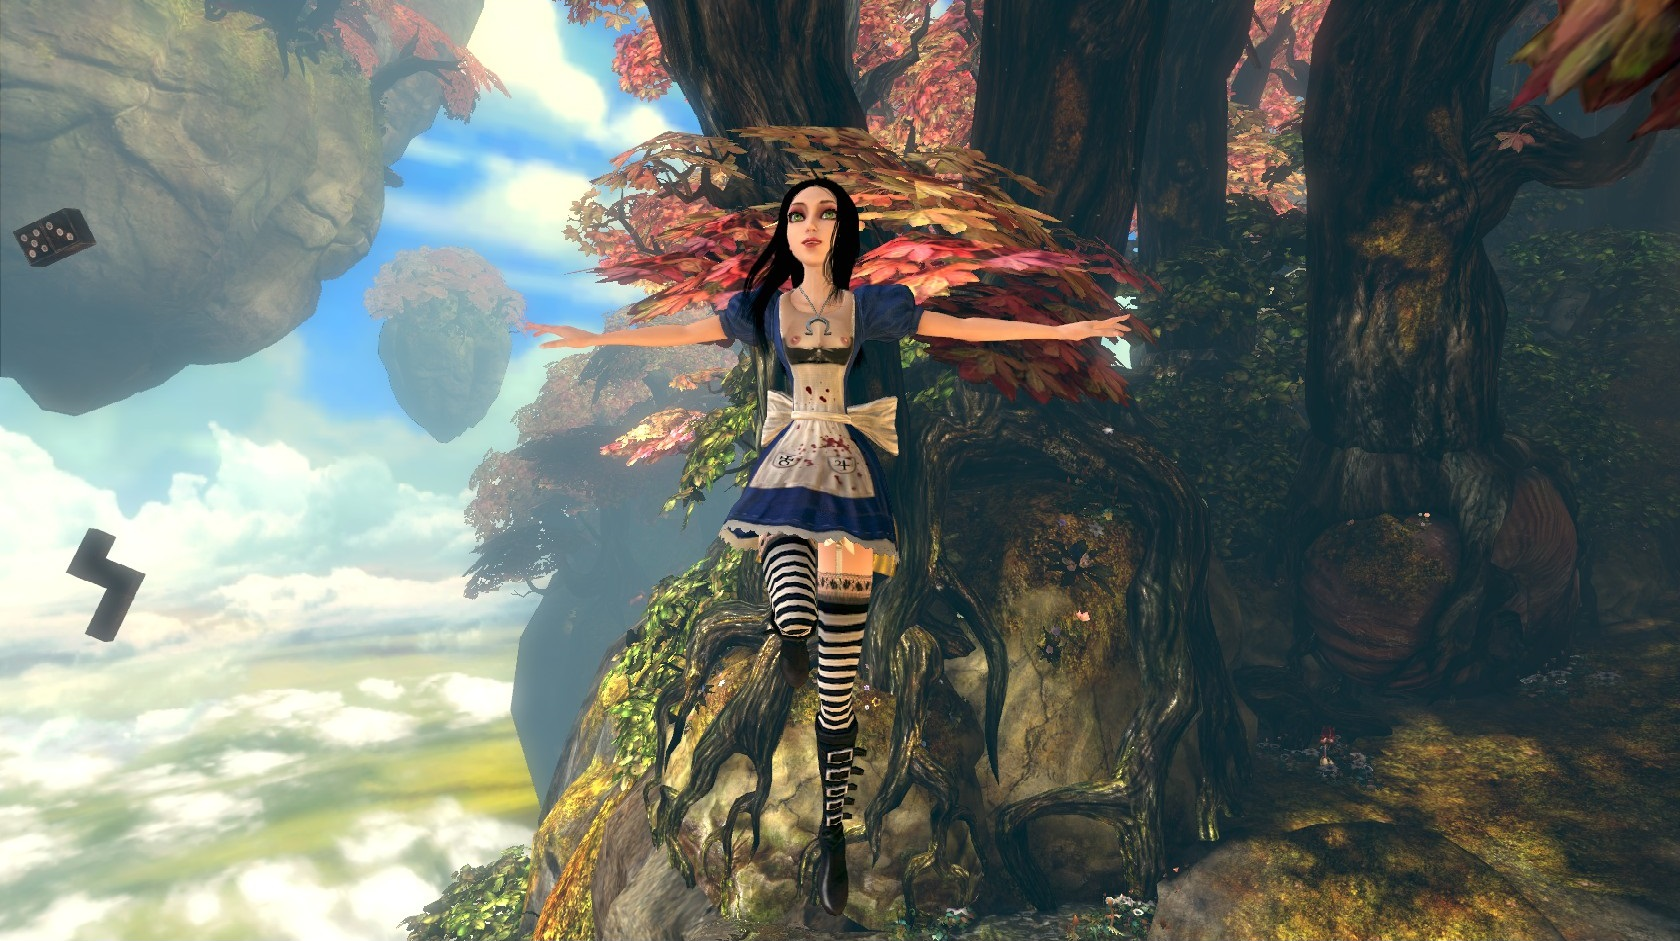 Alice madness returns nude patch ps exploited clips